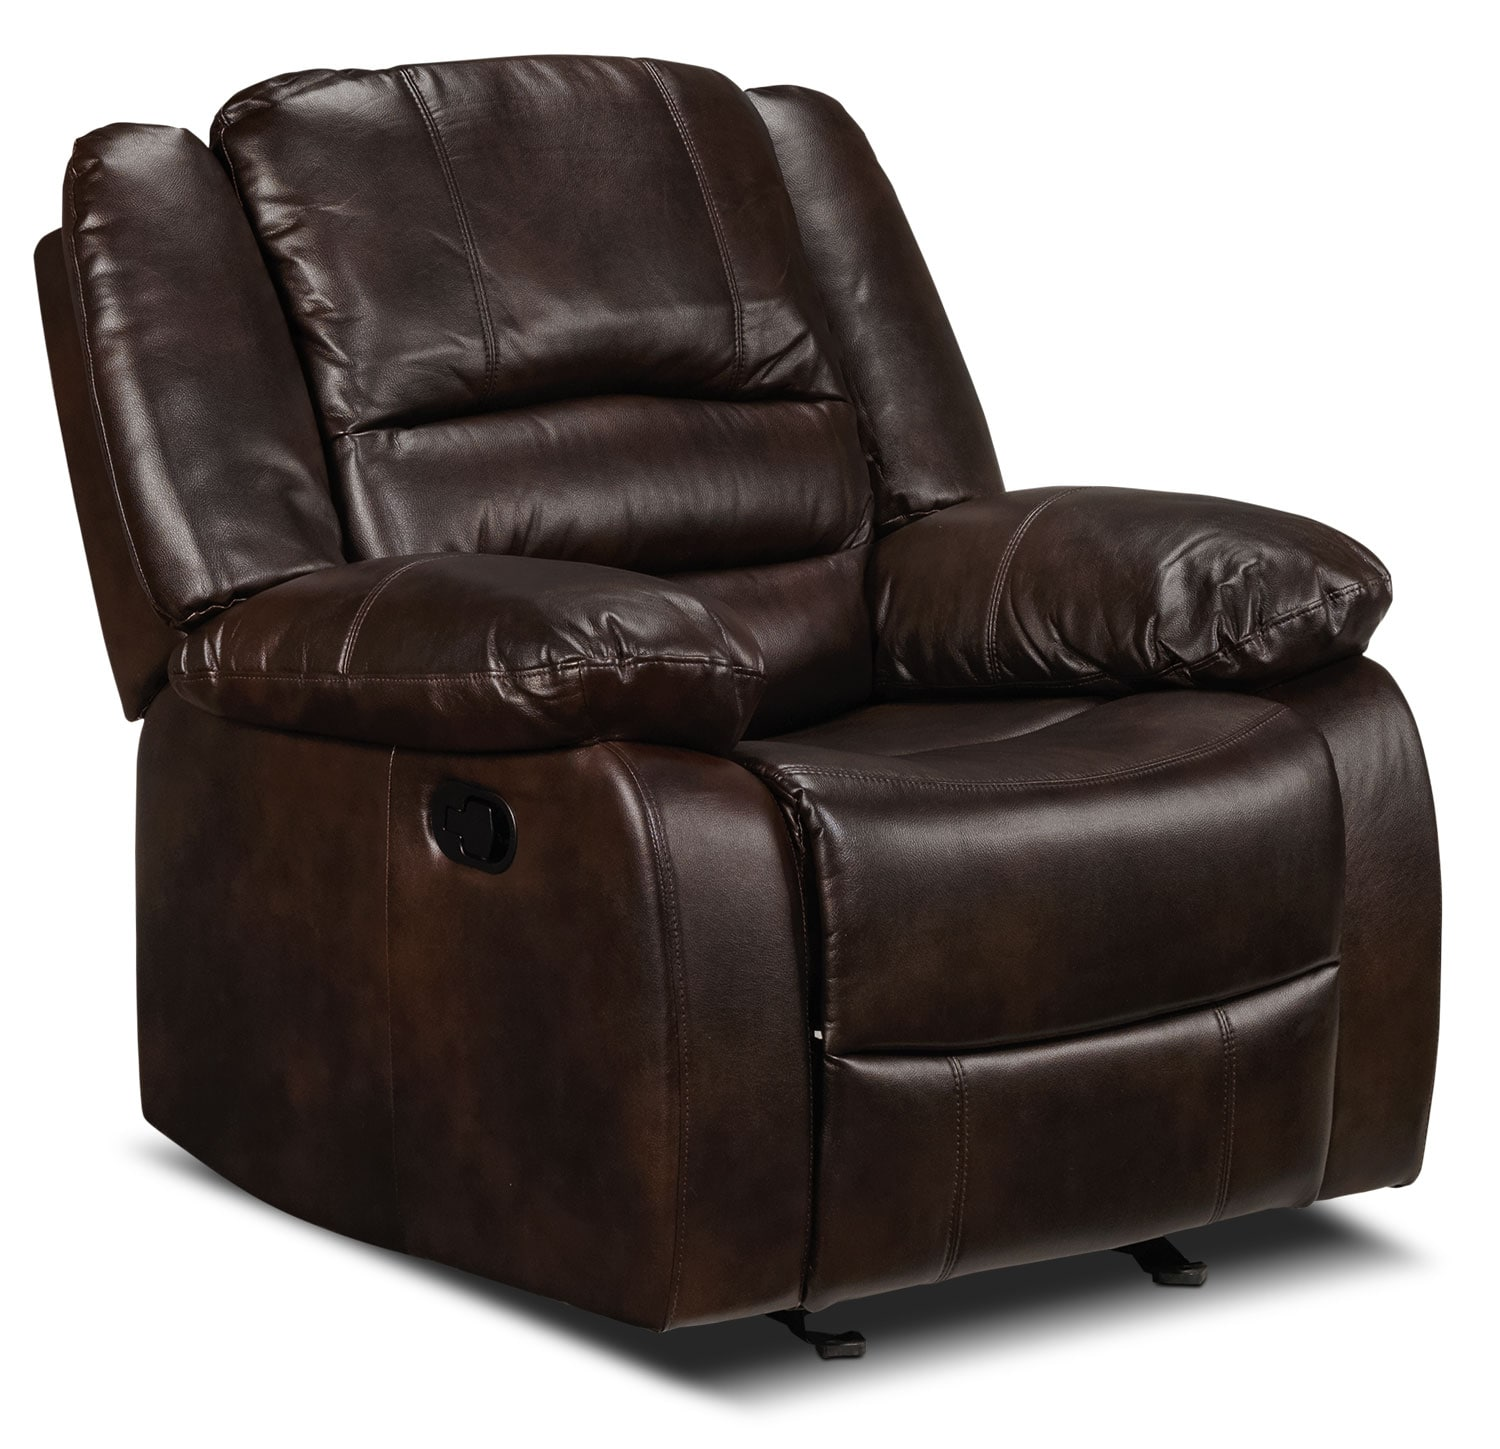 Brooksdale Rocker Recliner - Deep Brown